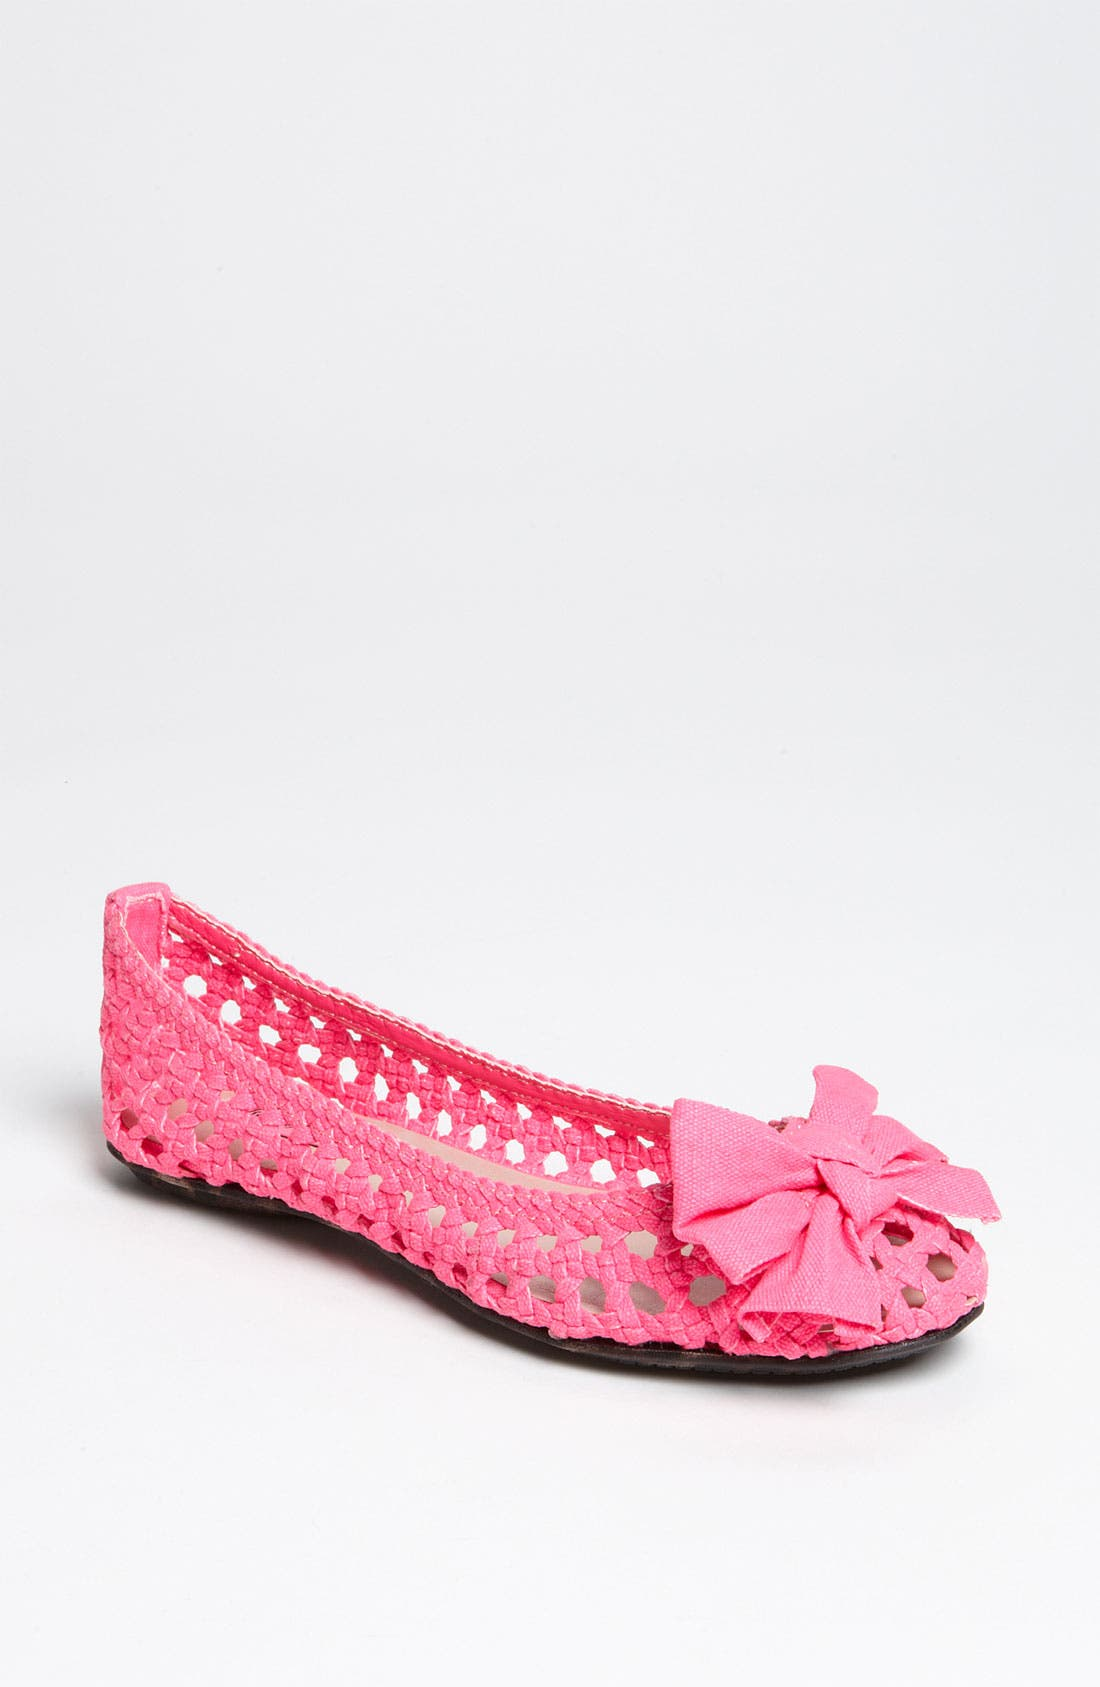 Alternate Image 1 Selected - Betsey Johnson 'Snippii' Flat